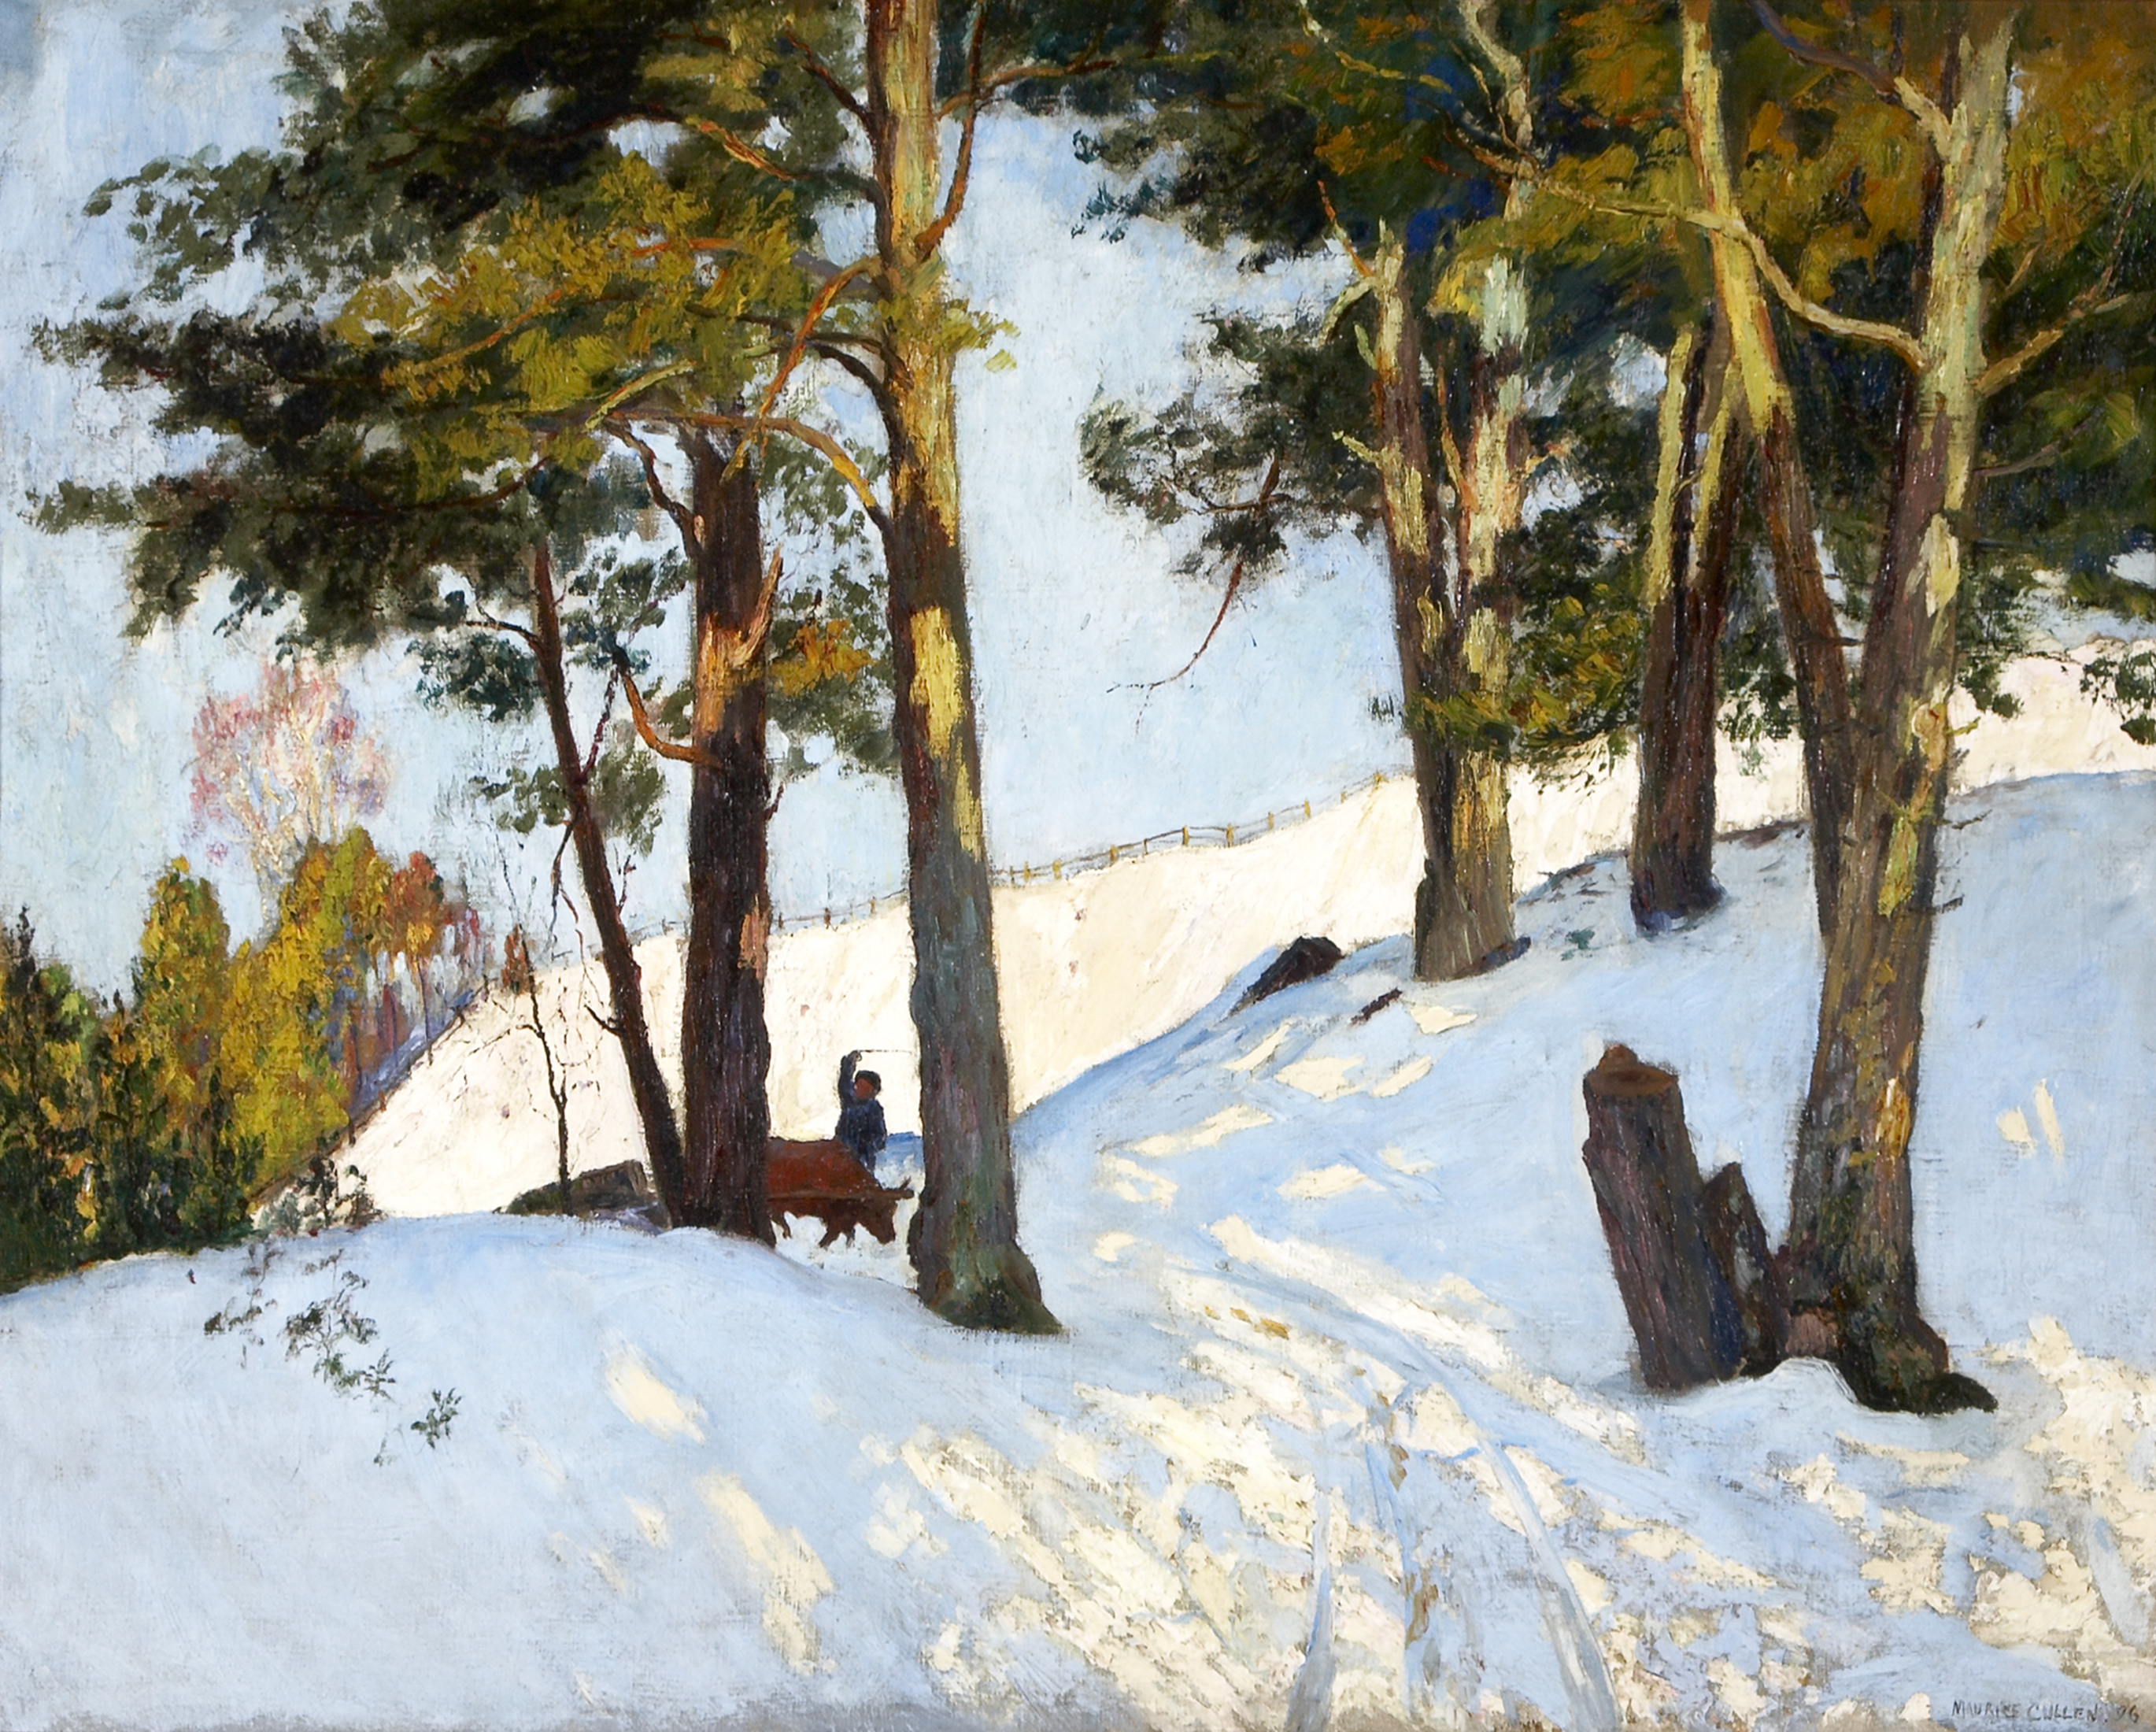 Tall trees rise in a winter landscape. The light mottles the snow with bluish and yellowish highlights. Seen from a distance, a man with a whip is urging on a draft animal pulling a load of logs.